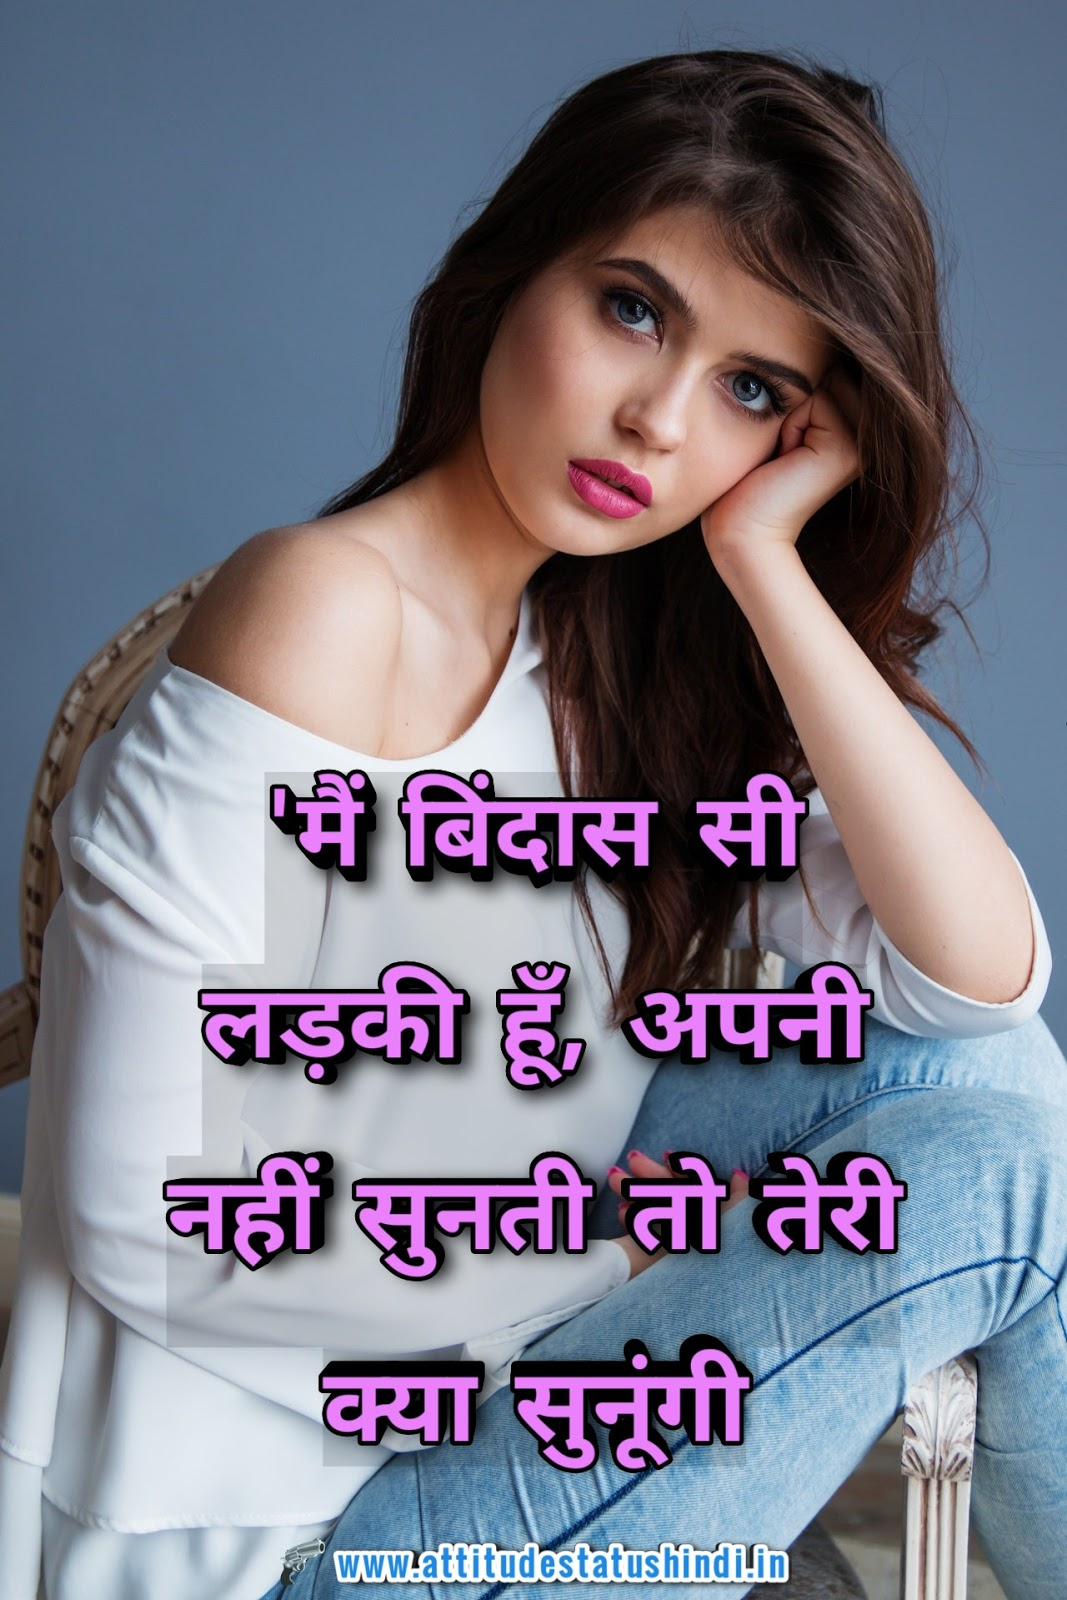 best attitude status for girl